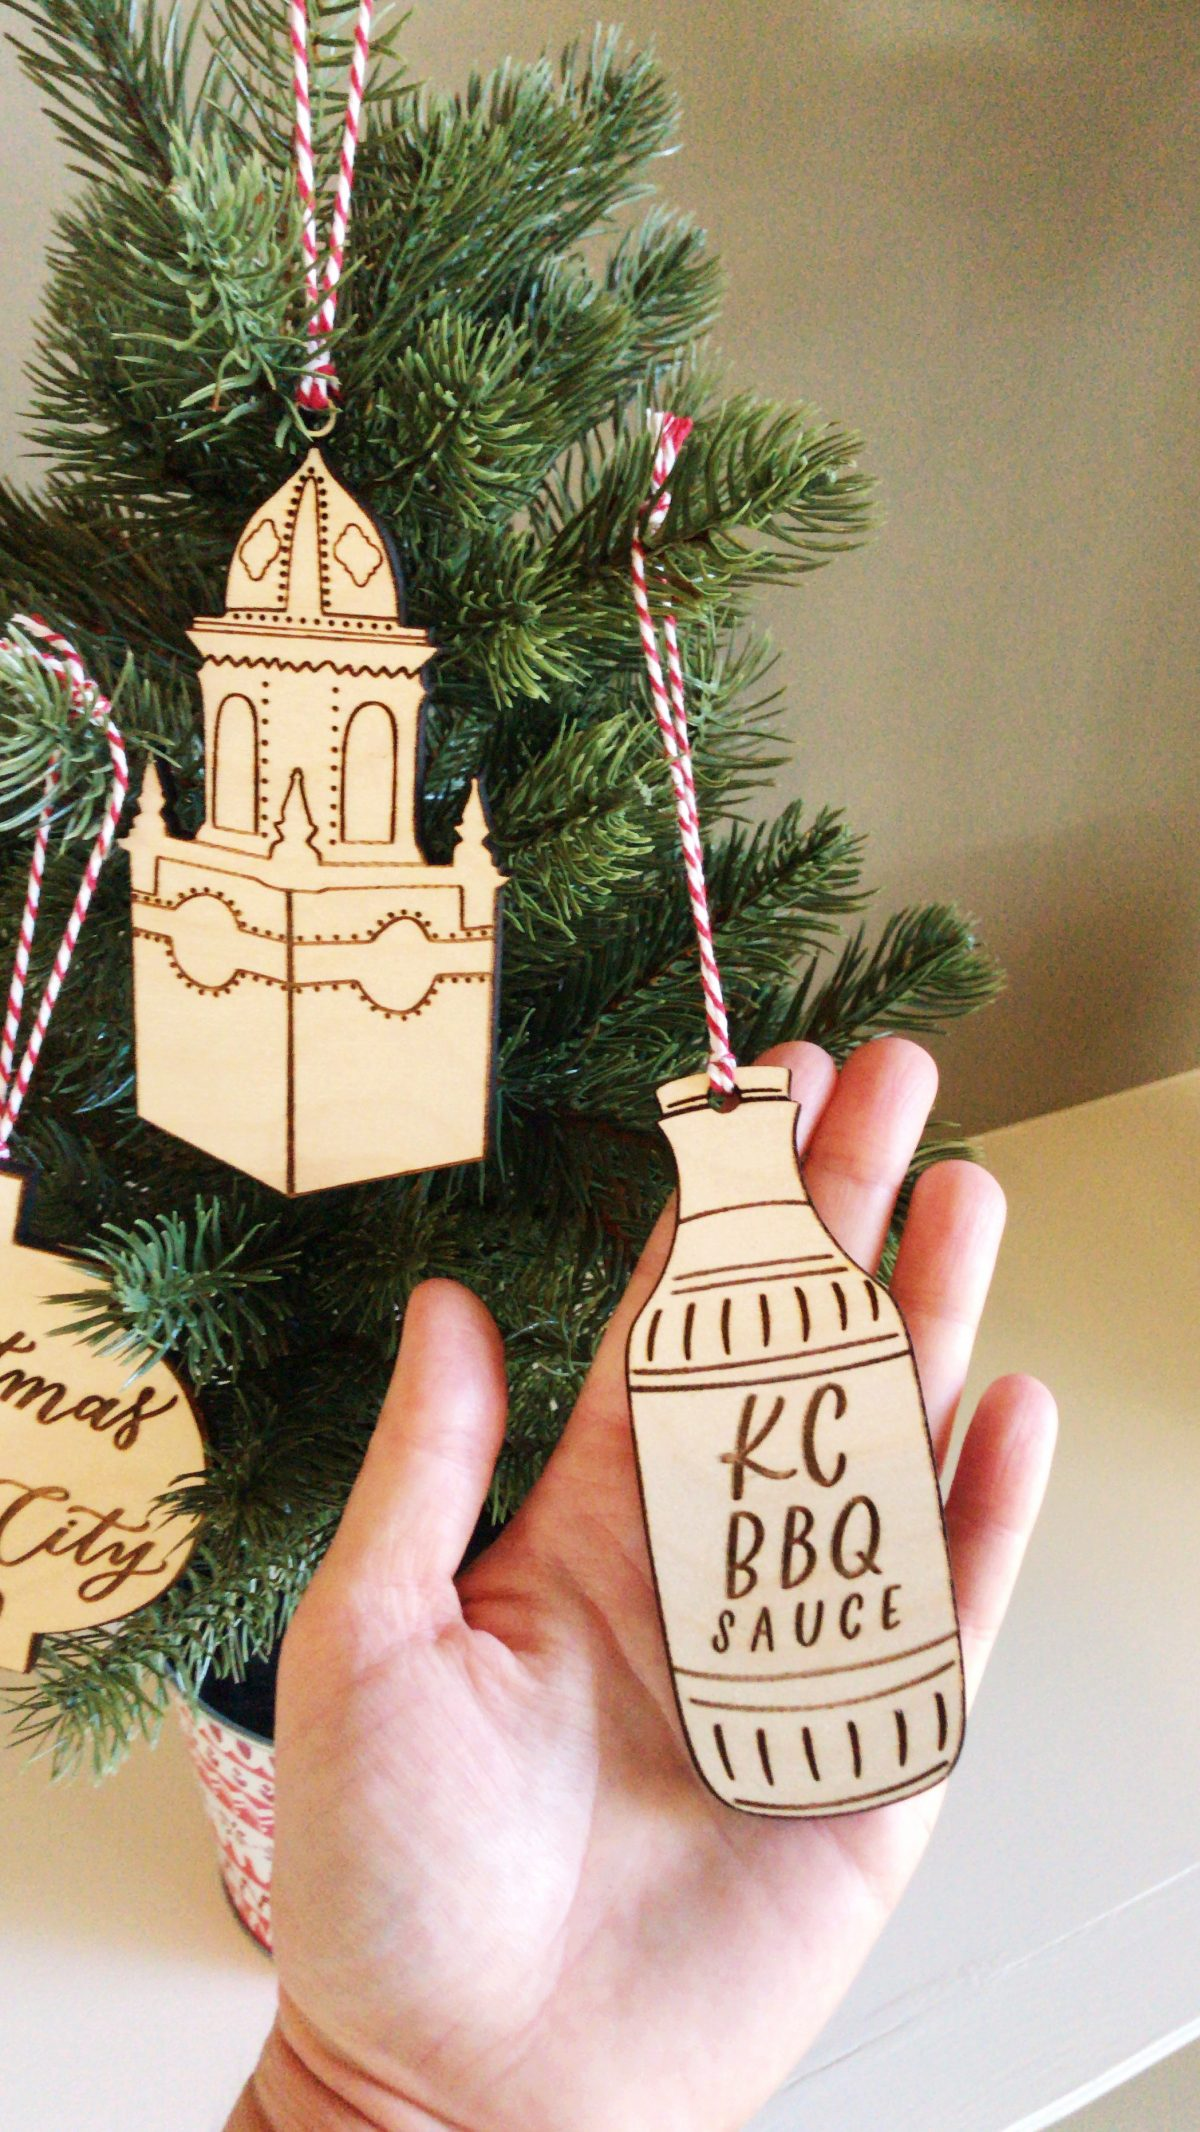 Kansas City BBQ sauce Christmas ornament